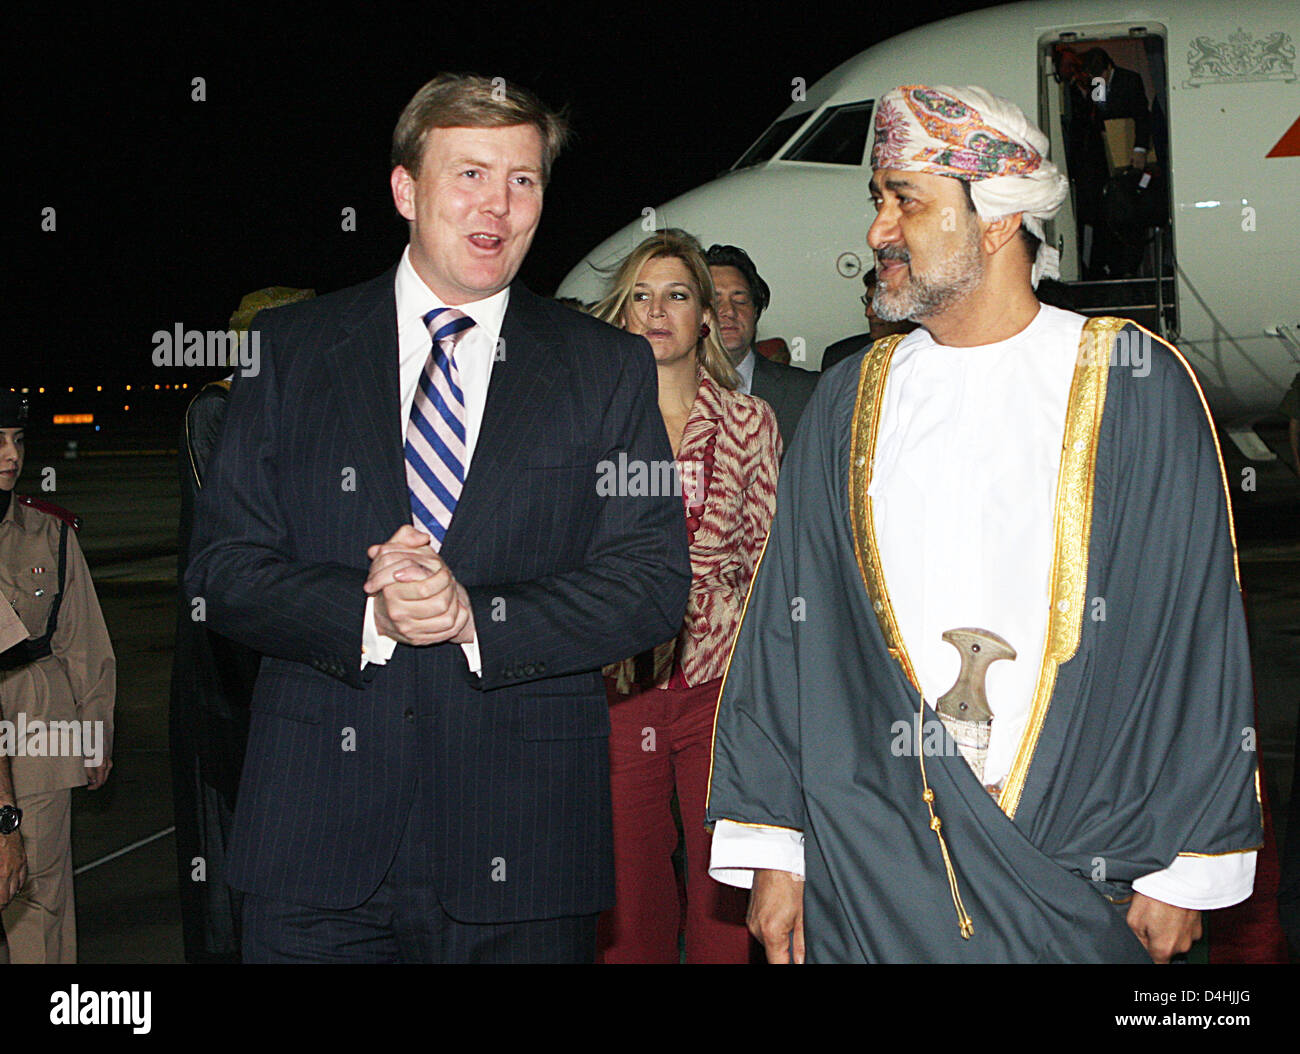 sayyid haitham bin tariq al siad r s minister of heritage sayyid haitham bin tariq al siad r s minister of heritage and culture welcomes crown prince willem alexander of the l and his wife